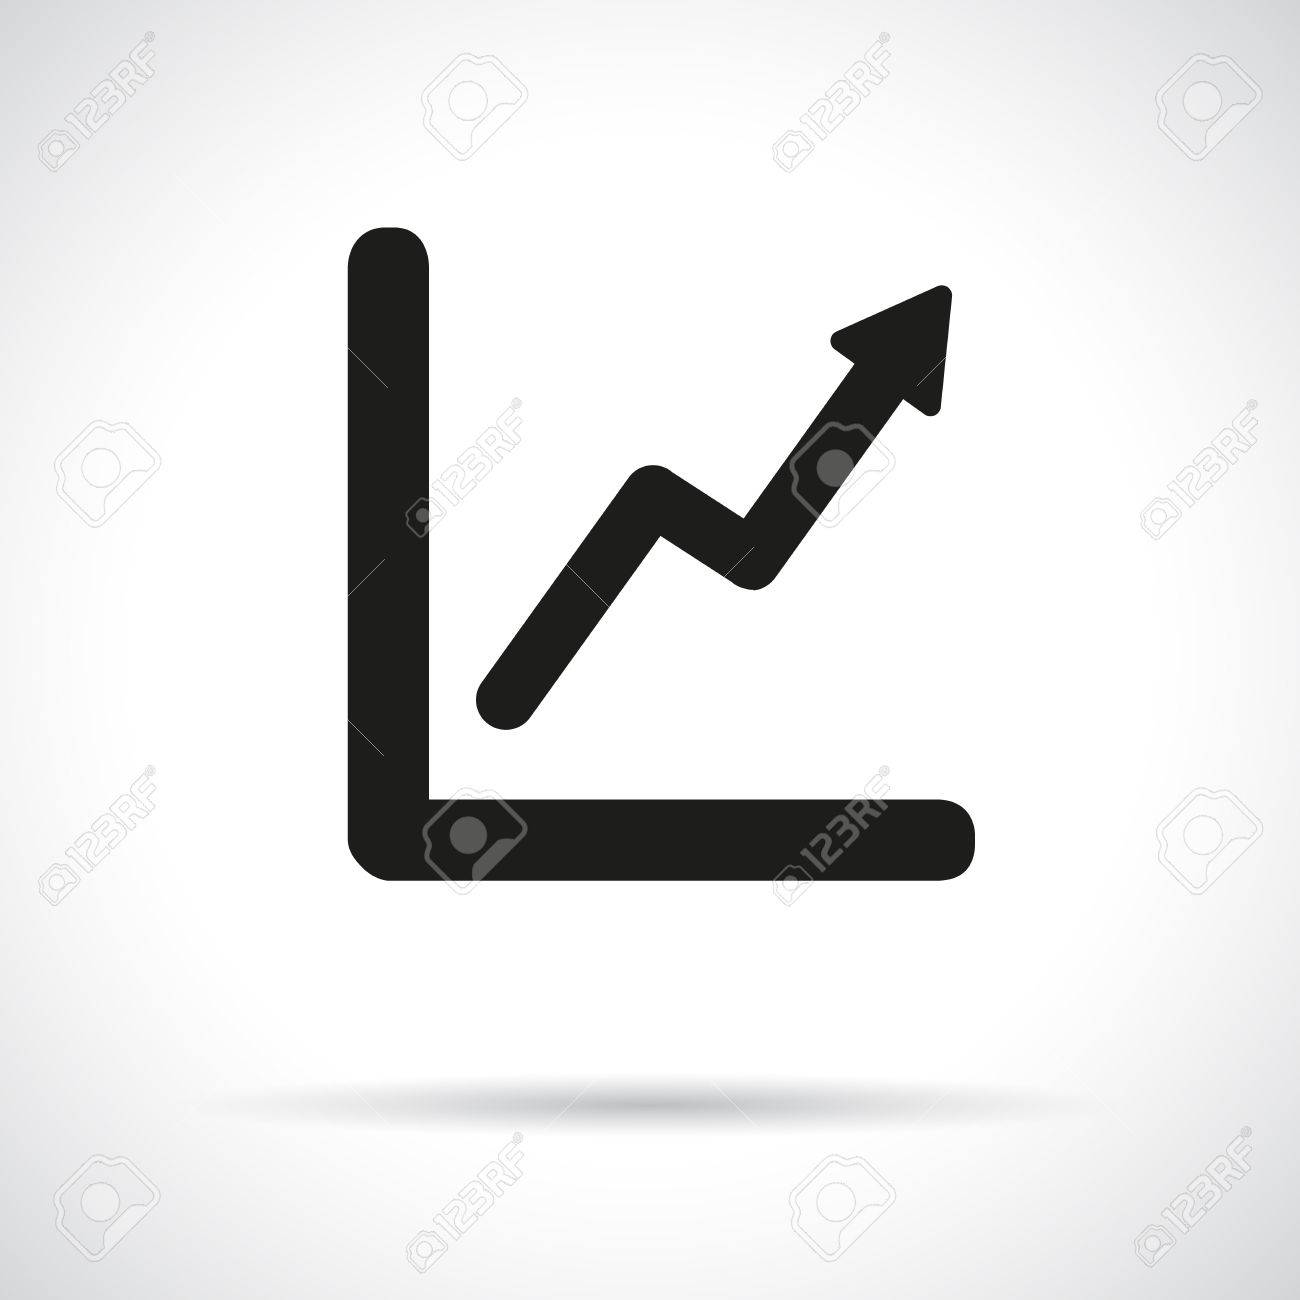 hight resolution of graph diagram black flat icon with shadow growth and success concept stock